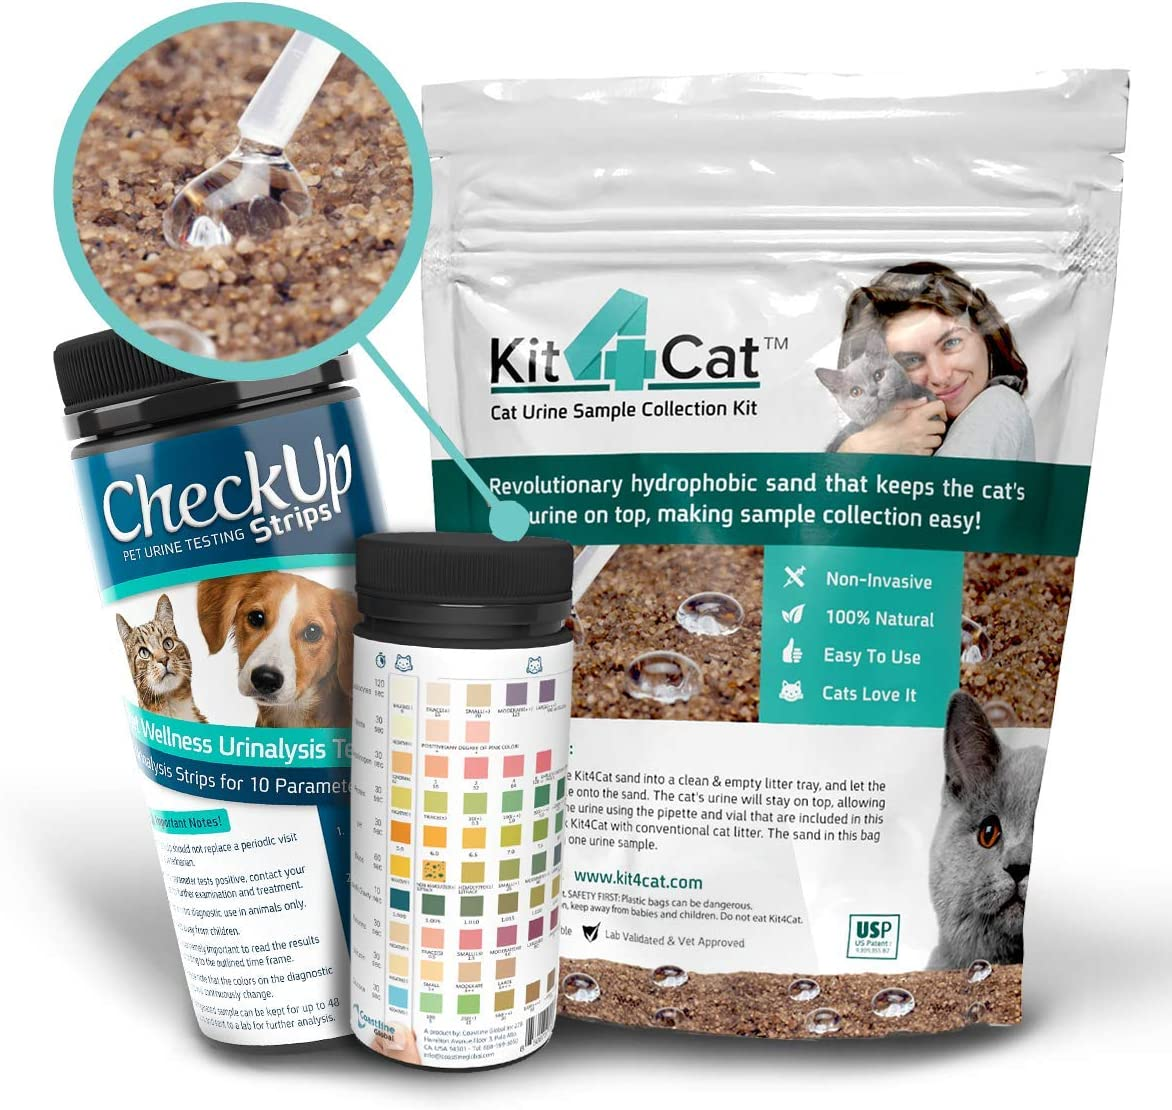 Kit4Cat Litter & Test Bundle - Kit4Cat Hydrophobic Litter with CheckUp 10 Parameters Testing Strips x 50